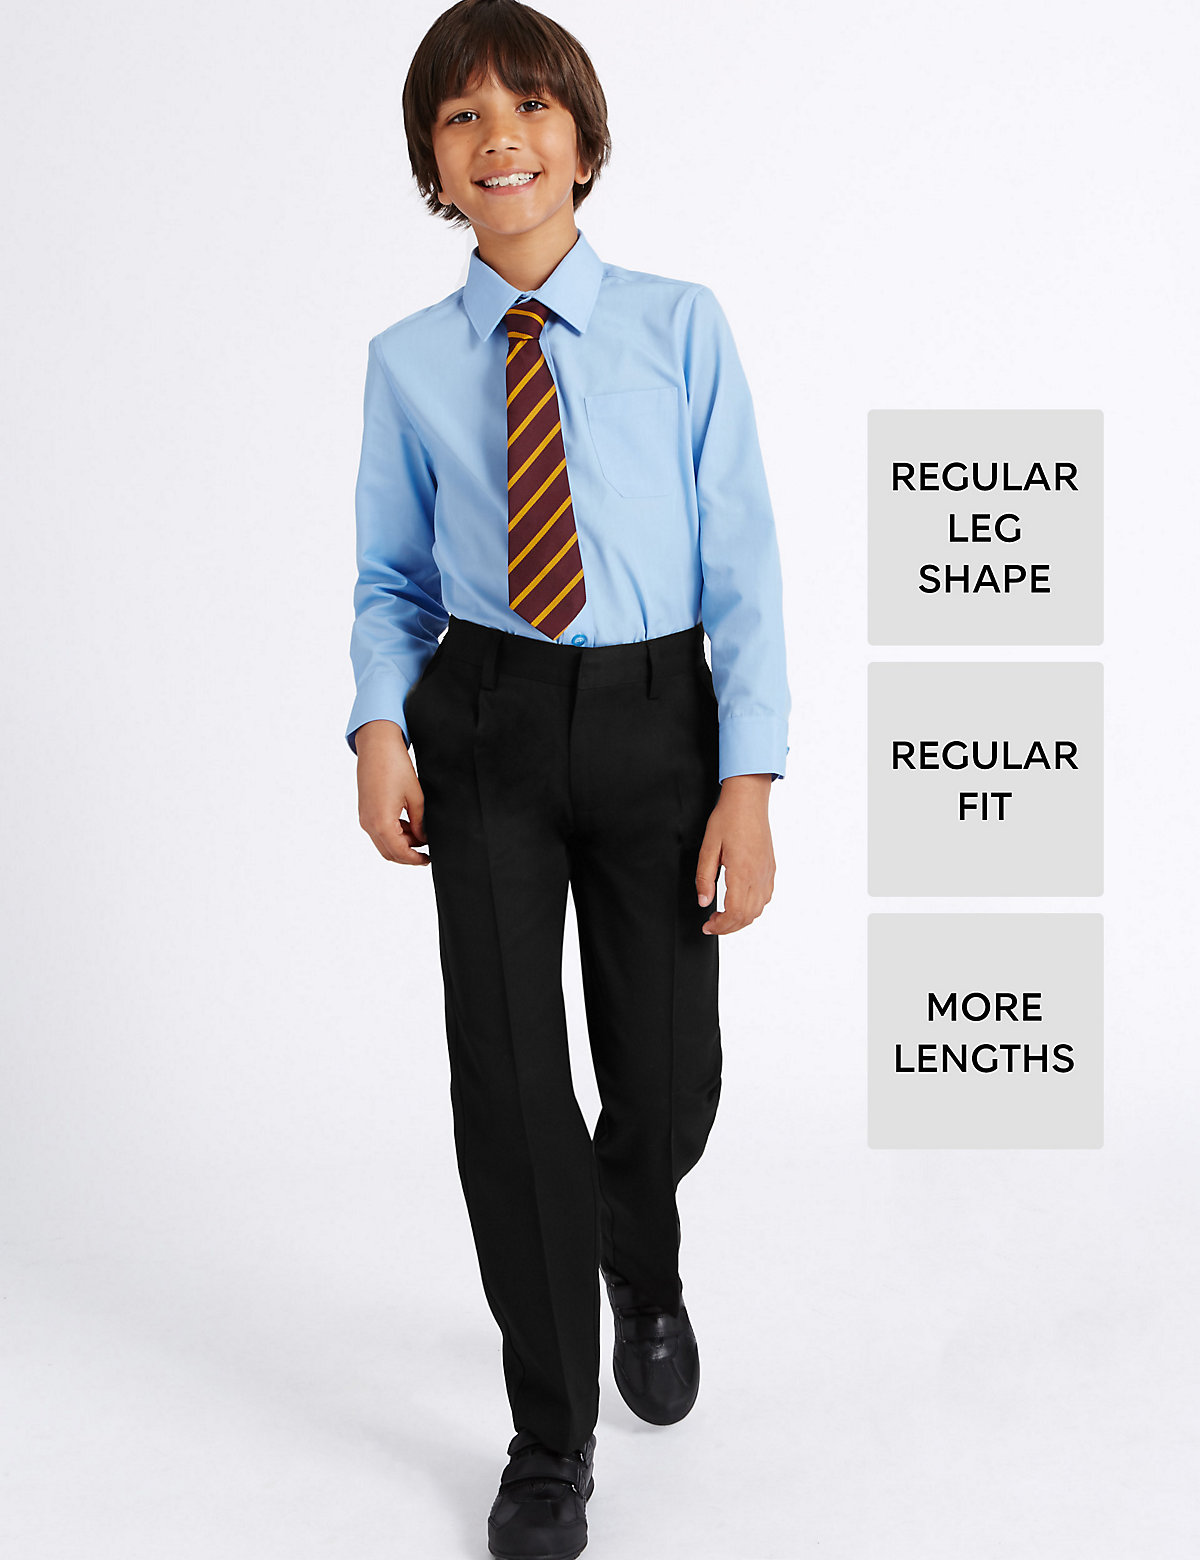 Boys' Longer Length Supercrease Adjustable Waist Straight Leg Trousers with Triple Action Stormwear.